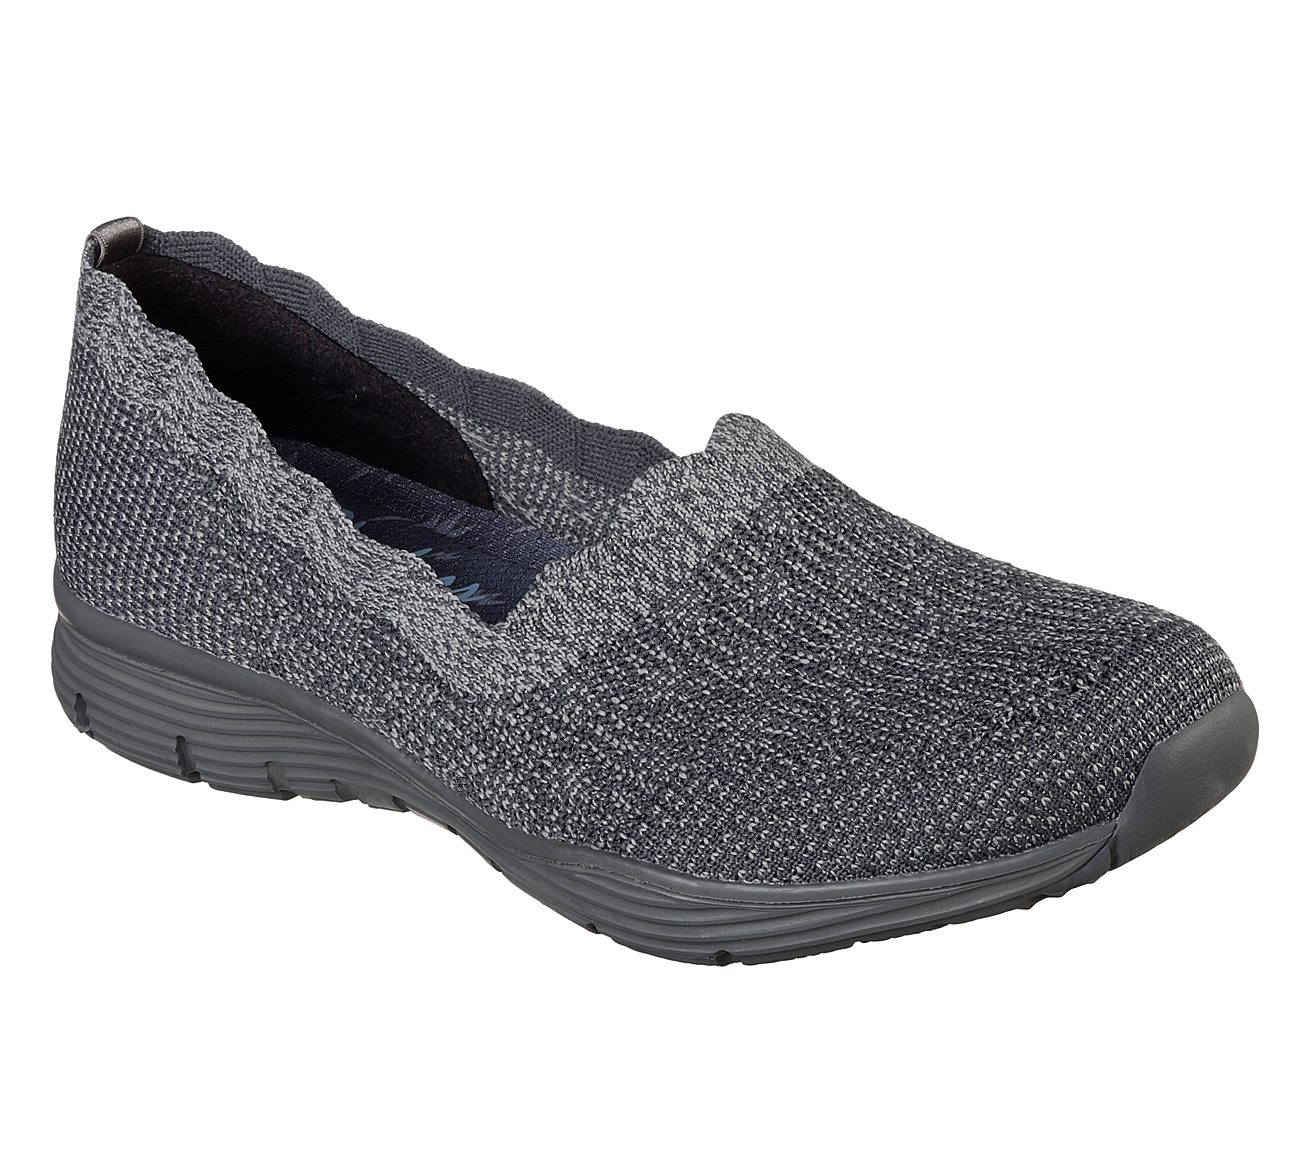 fad1319cab08 Buy SKECHERS Seager - Diamante Modern Comfort Shoes only  62.00